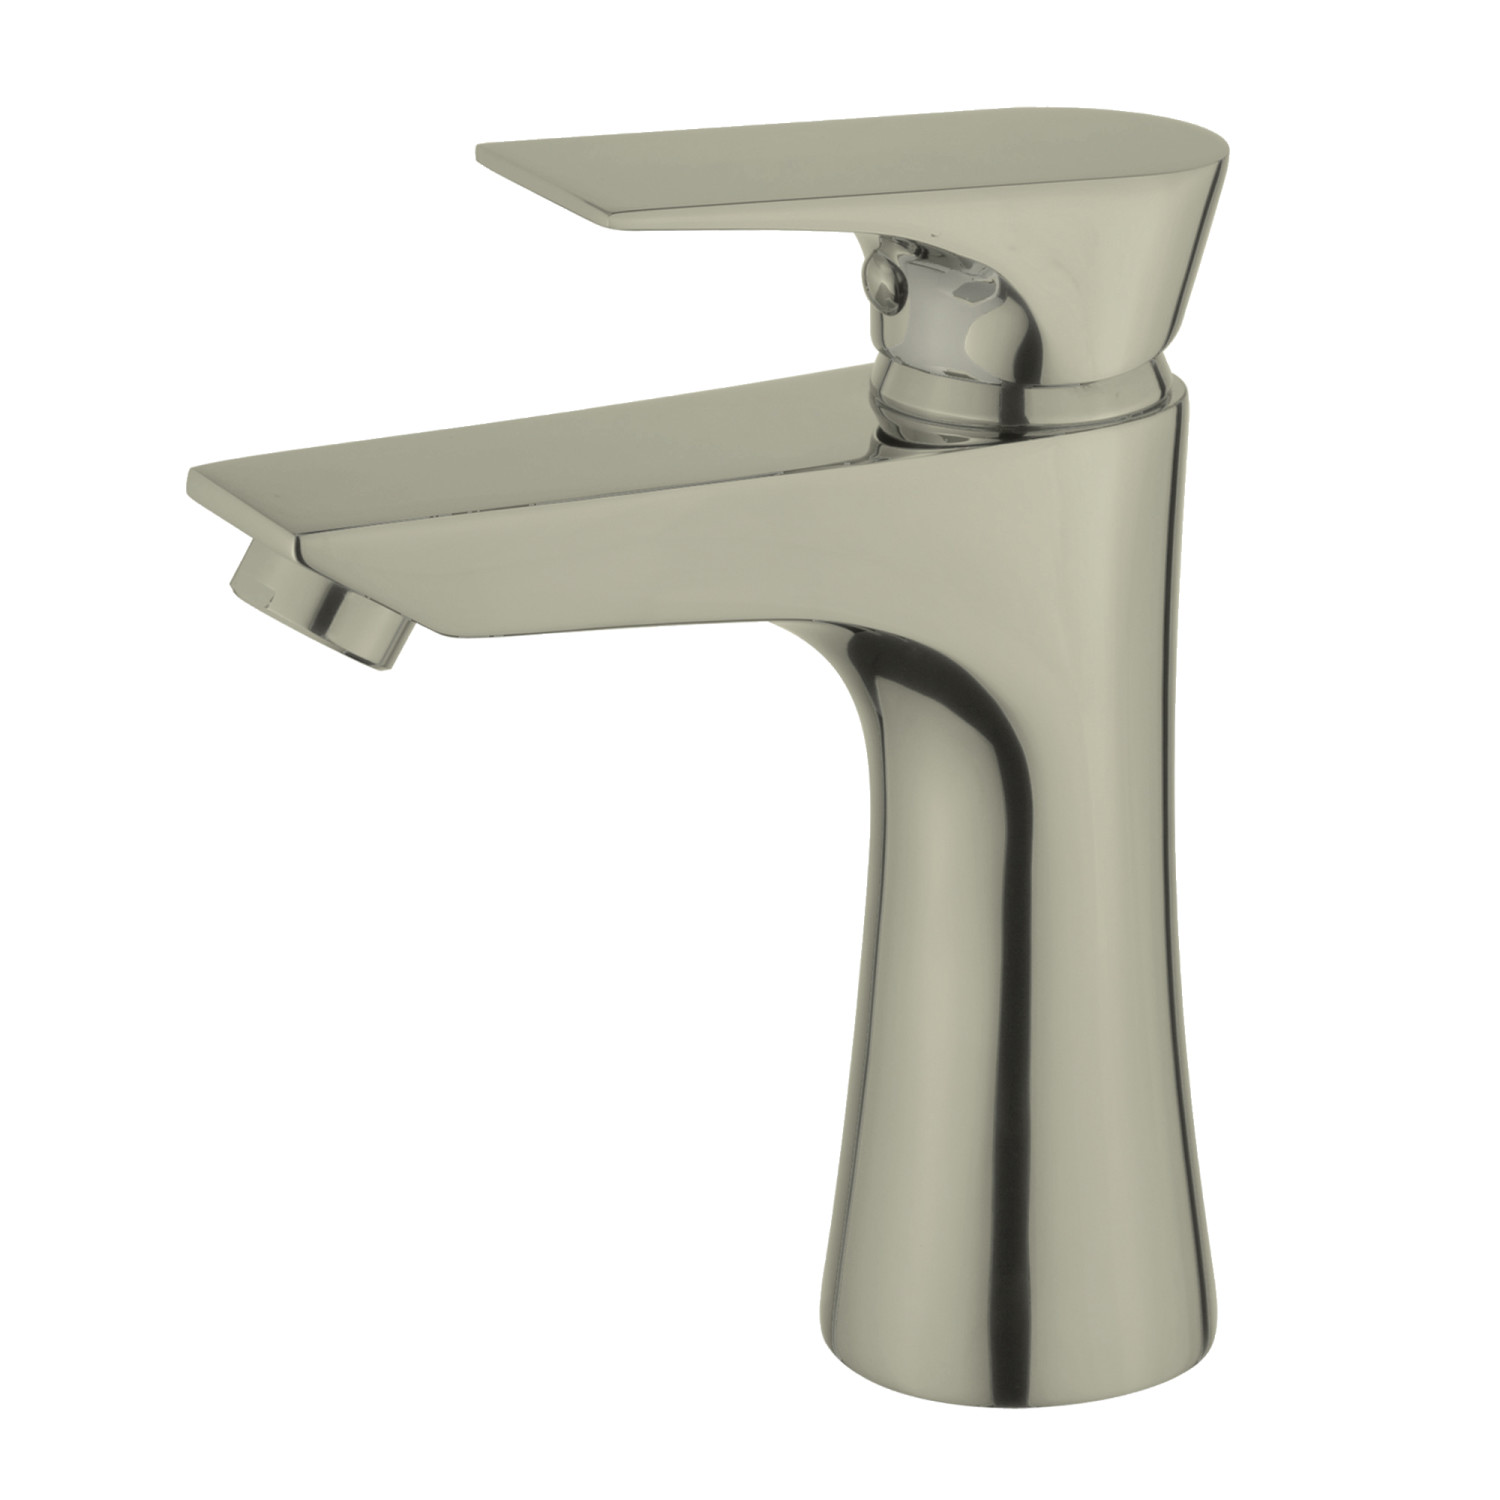 Kingston Brass LS4228XL Single-Handle Lavatory Faucet, Brushed ...